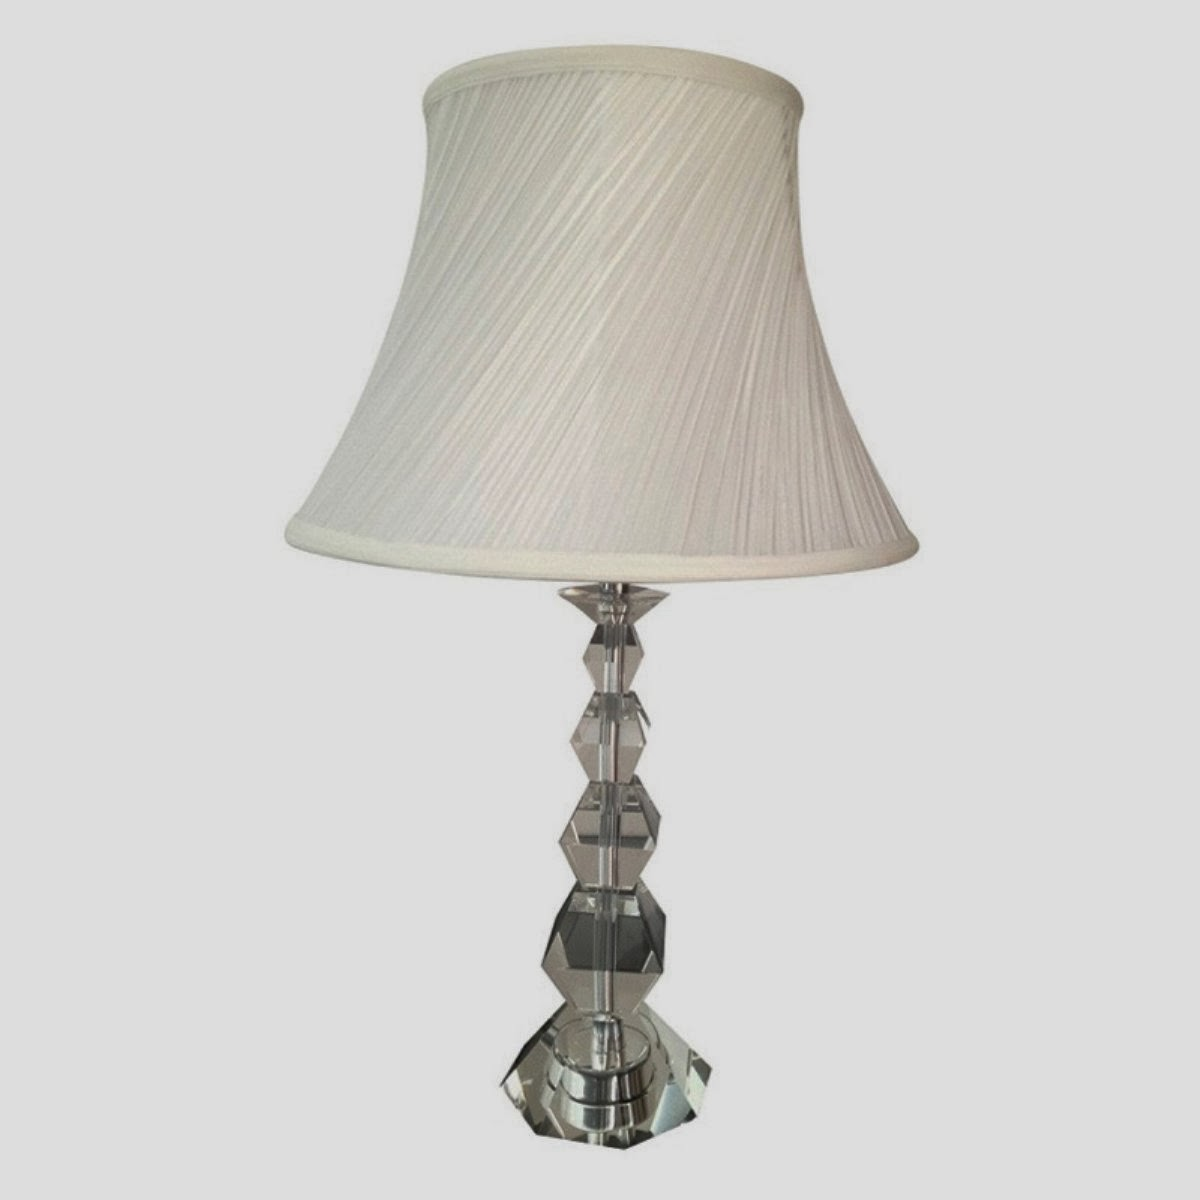 Luxury Light Fixtures And Lamp Shades